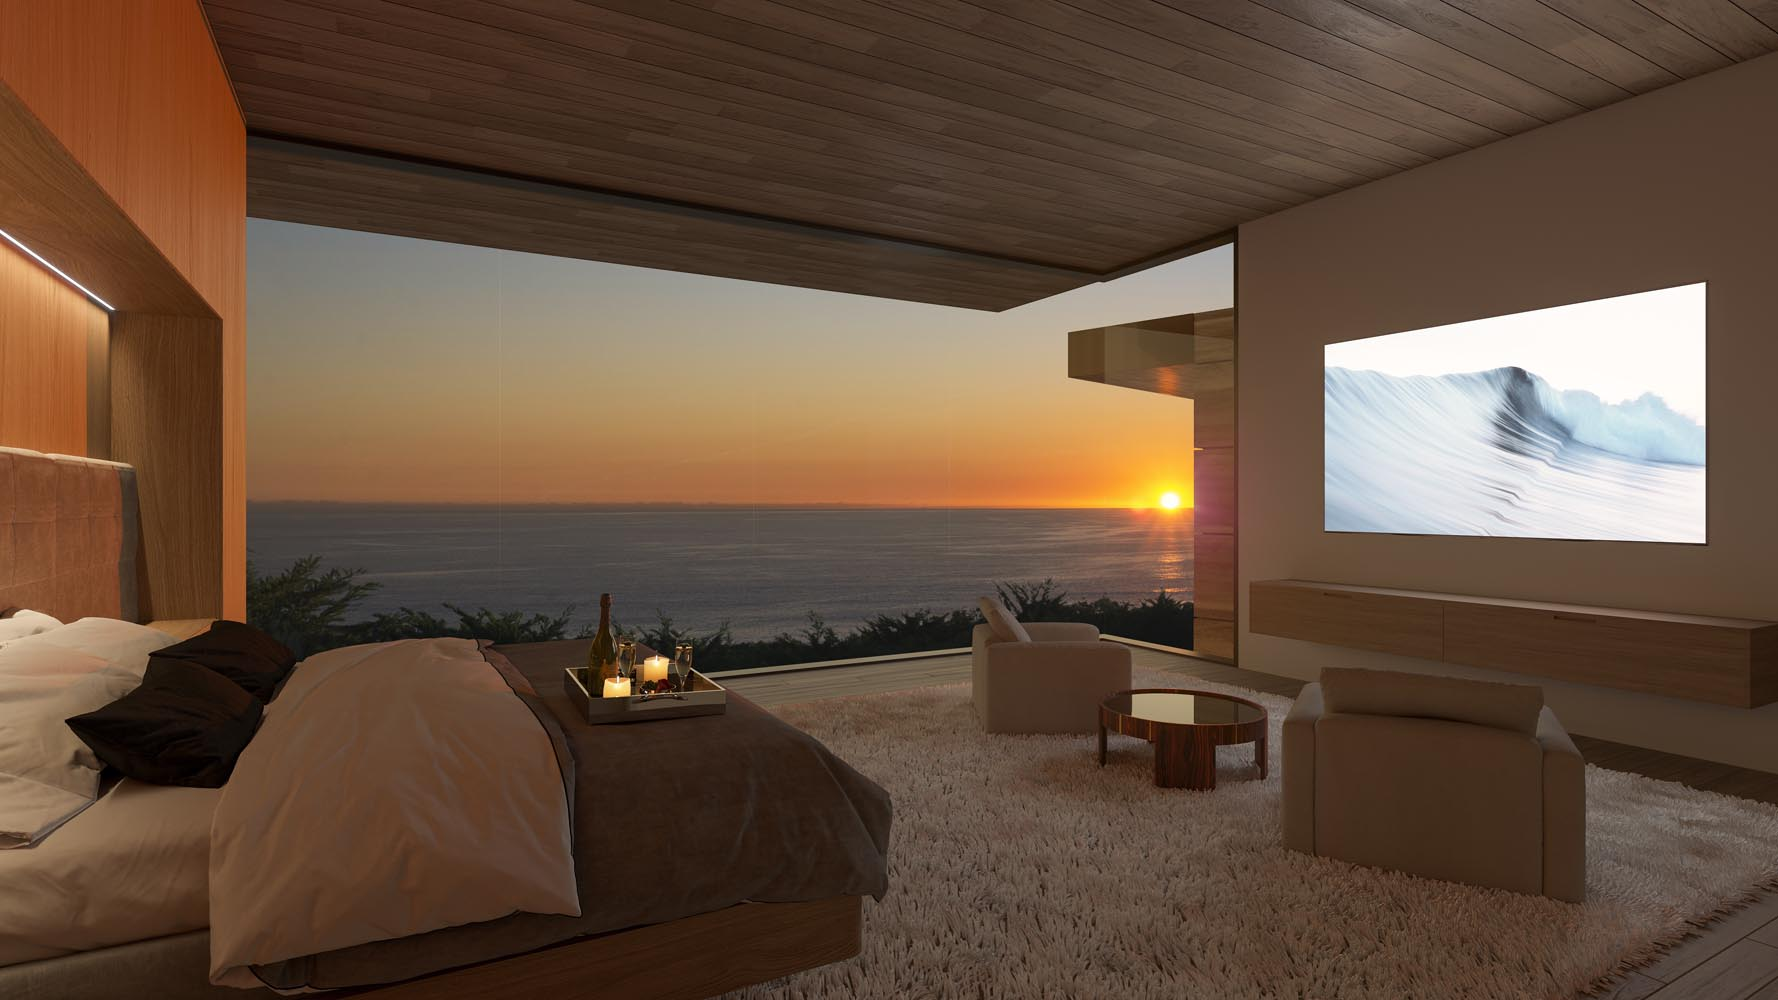 Lot 13 Marisol Malibu Ocean View